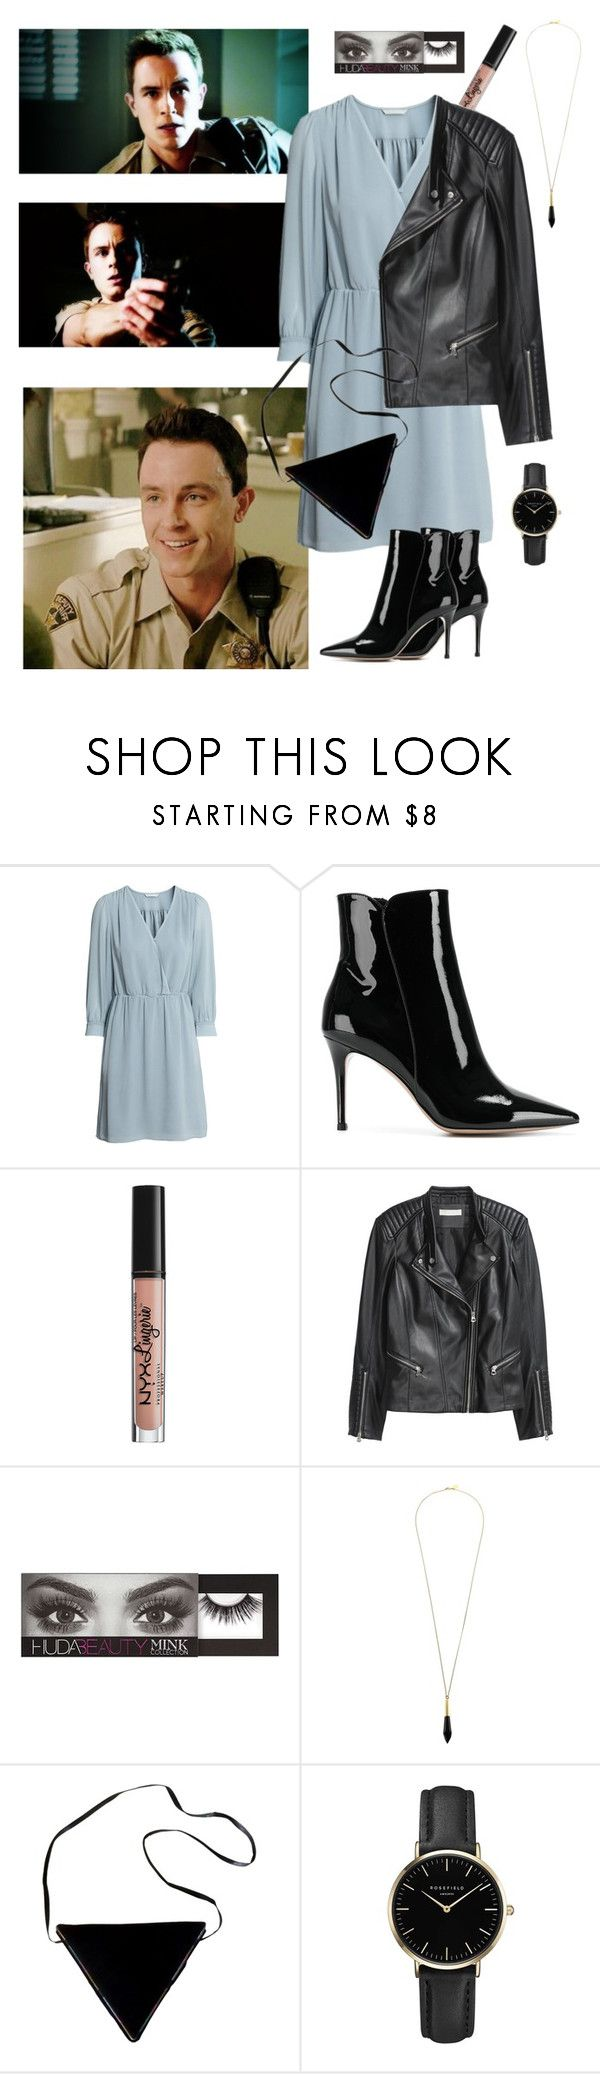 """Deputy Parrish with Ootd girl🙈"" by ladyroseee ❤ liked on Polyvore featuring Gianvito Rossi, NYX, H&M, Huda Beauty, Boutique by Lola, Casadei and ROSEFIELD"